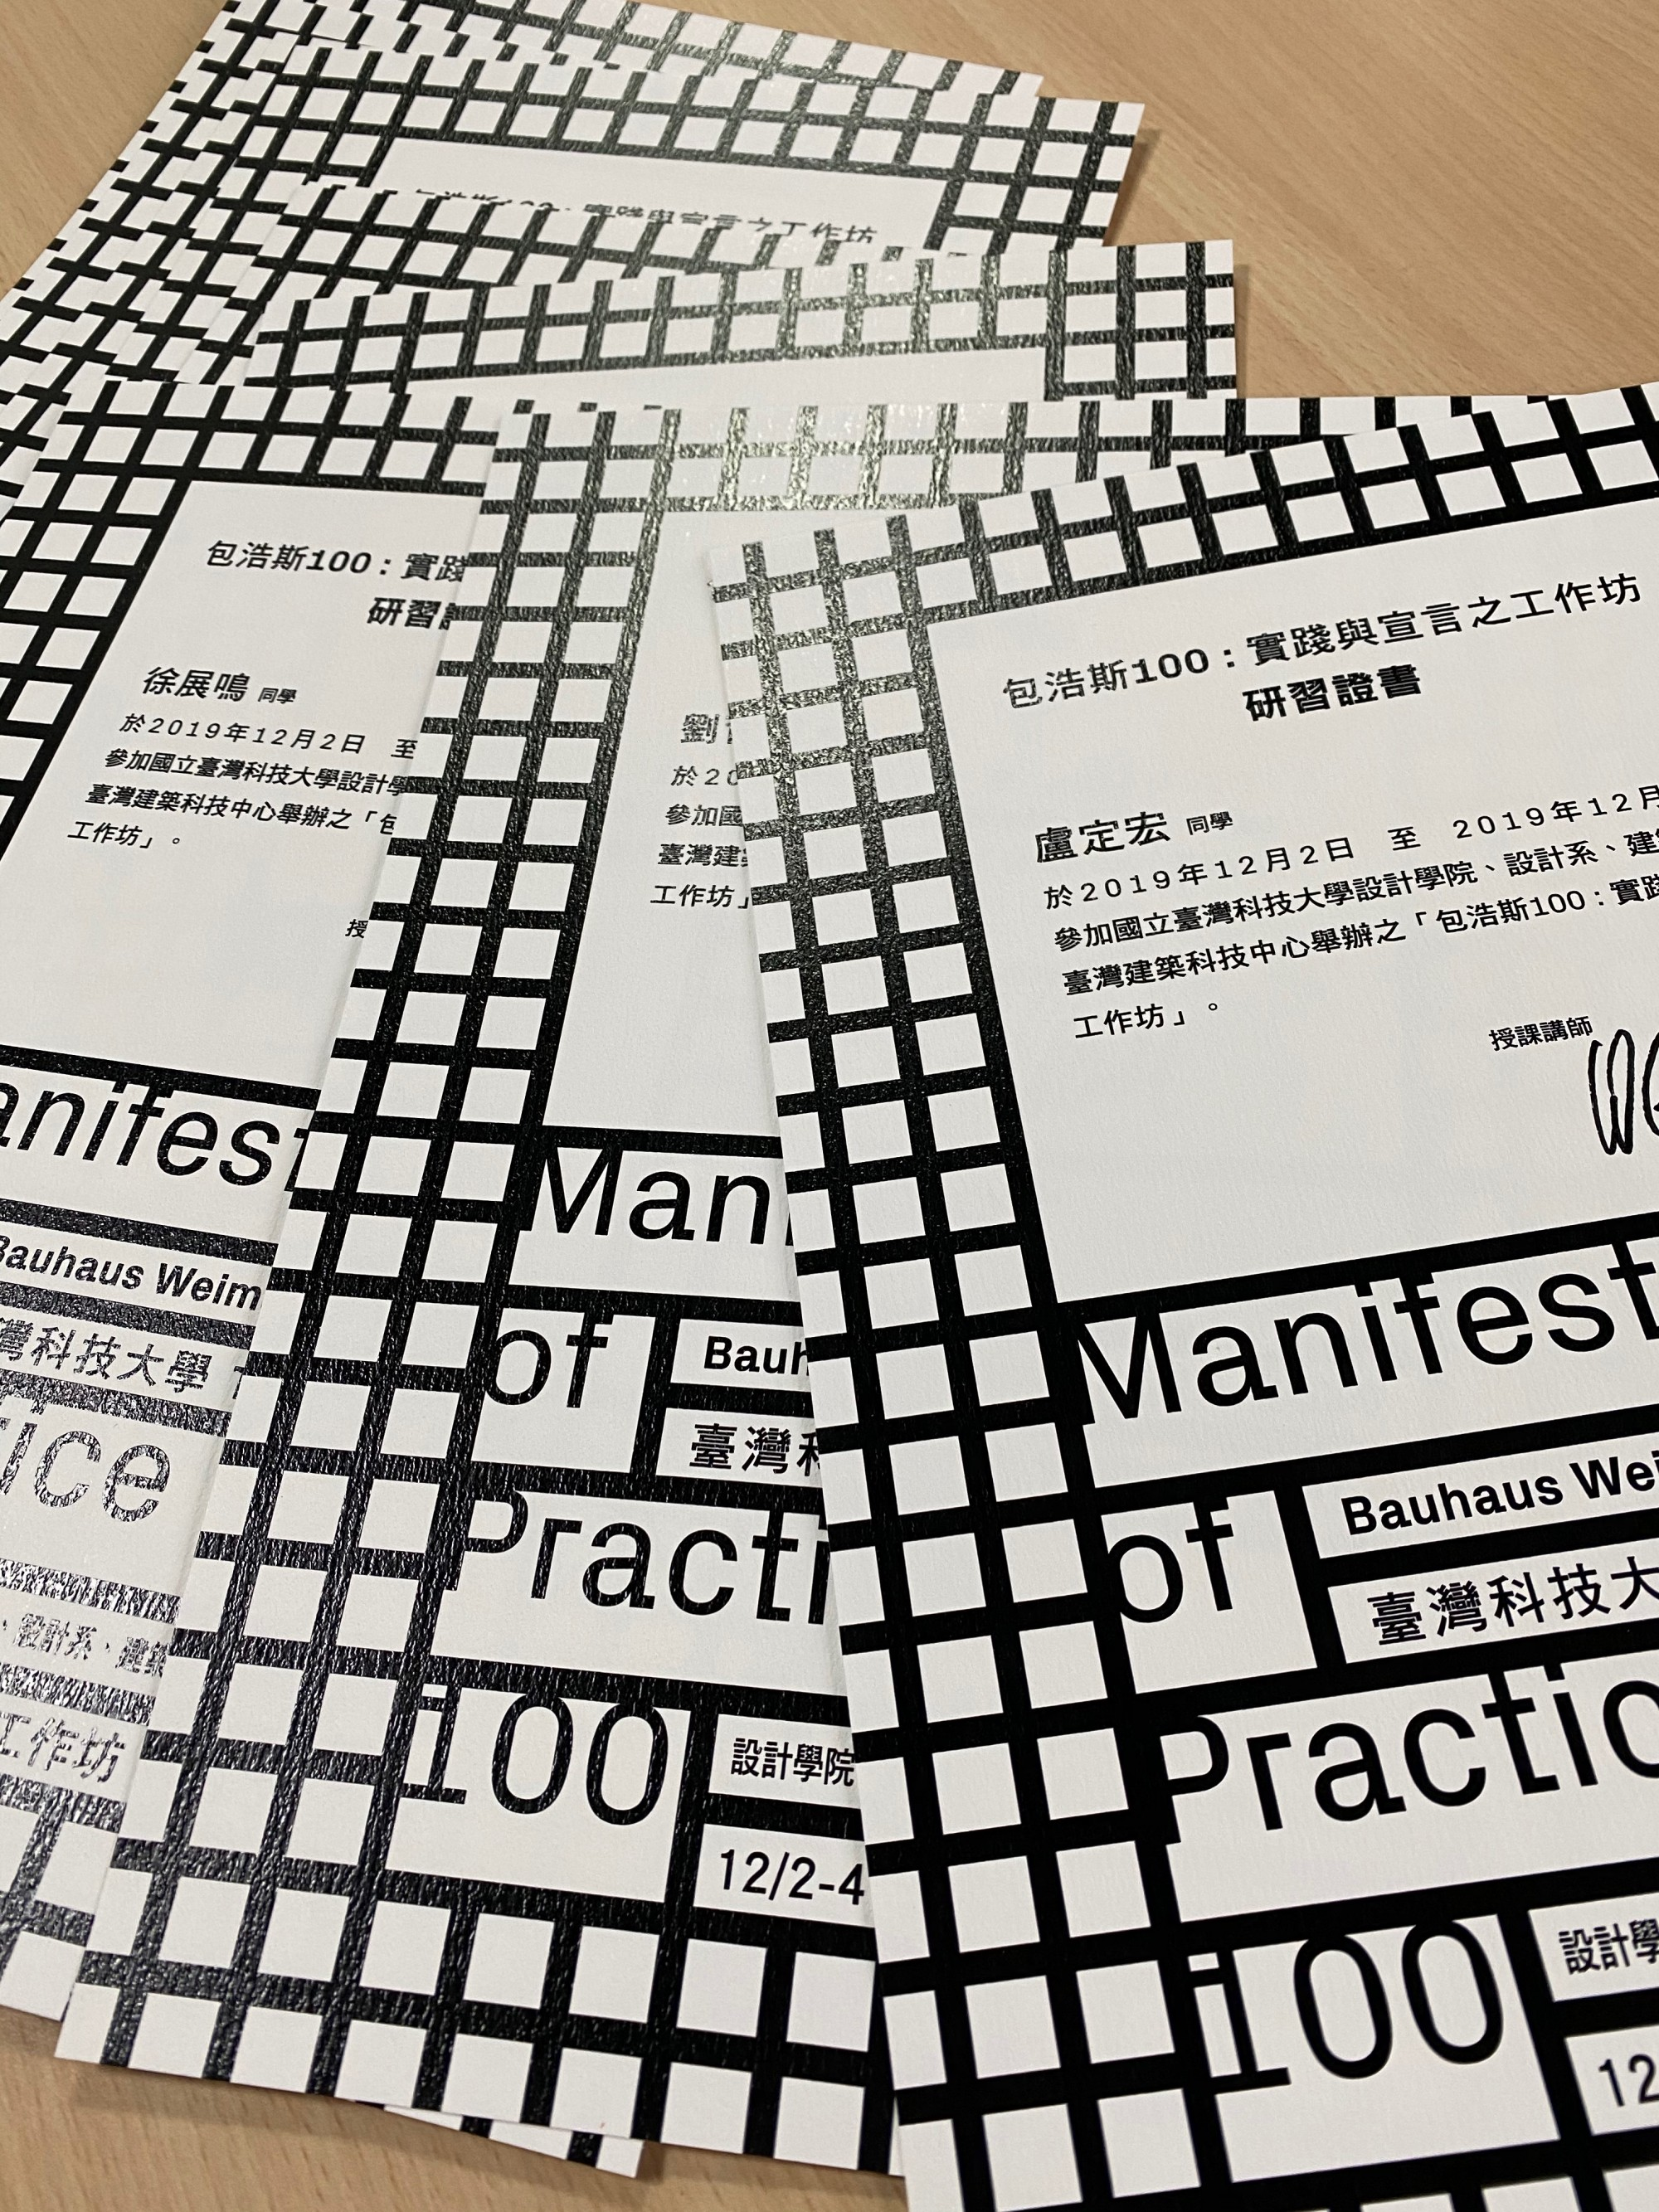 Manifest of Practice at Taiwan Tech 2019